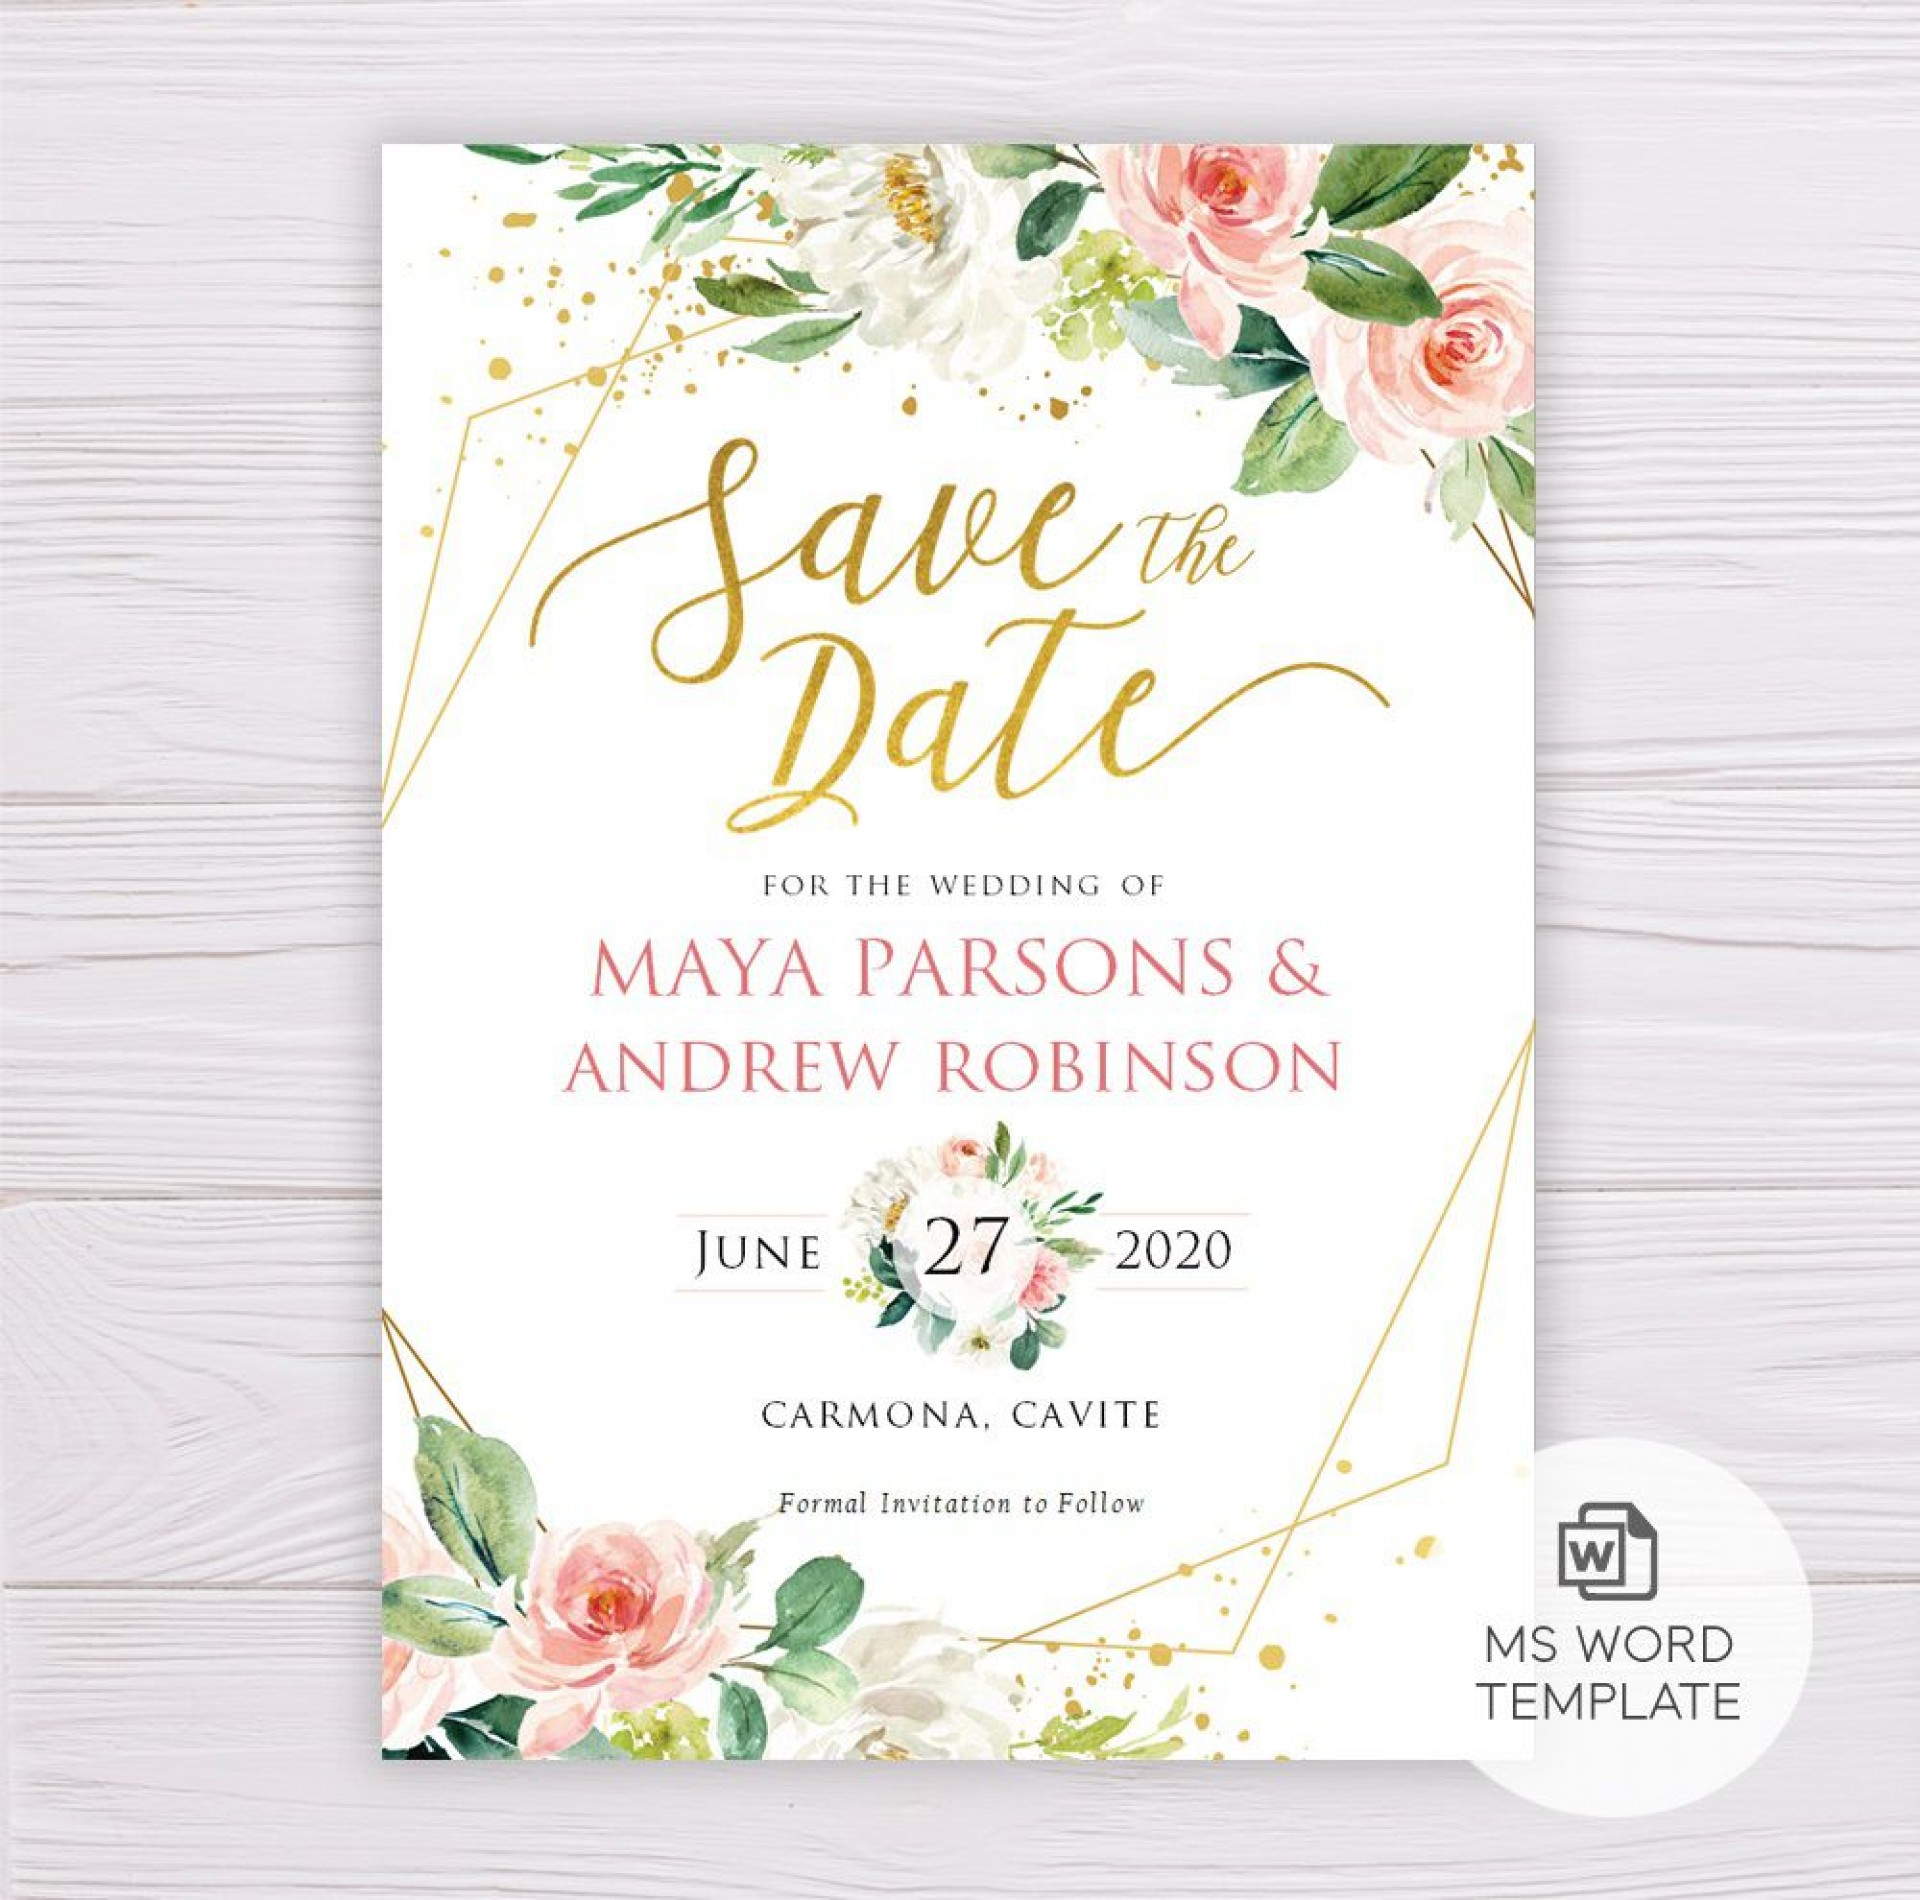 008 Beautiful Save The Date Word Template High Resolution  Free Birthday For Microsoft Postcard Flyer1920